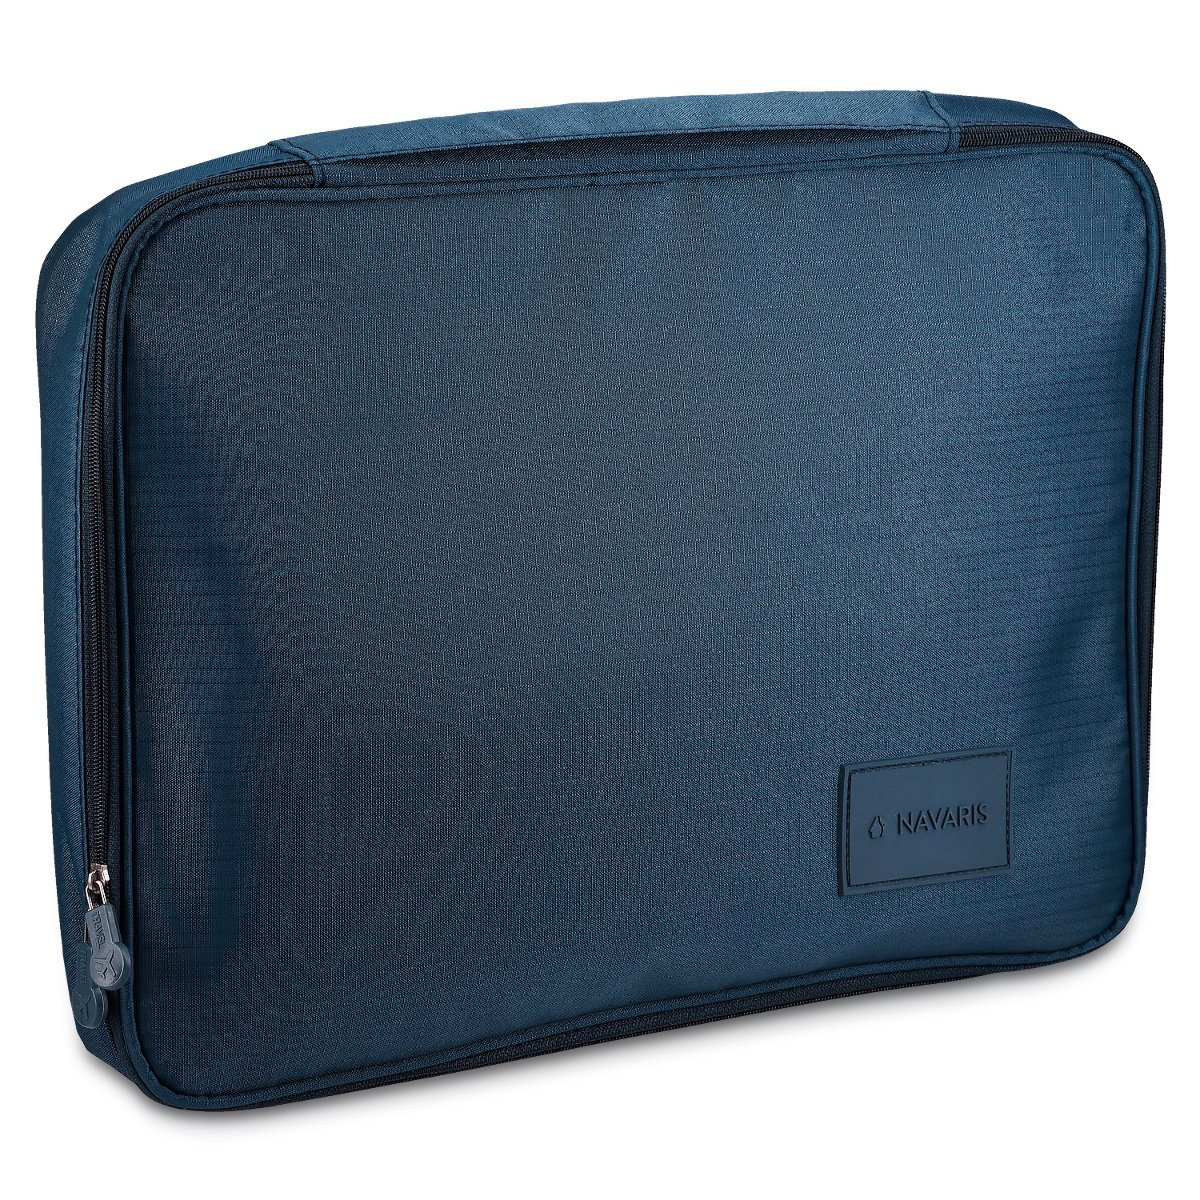 Navaris shirt bag with 2 x folding aids - shirt organiser for crease-free shirts while travelling - ideal for short trips, business trips - dark blue